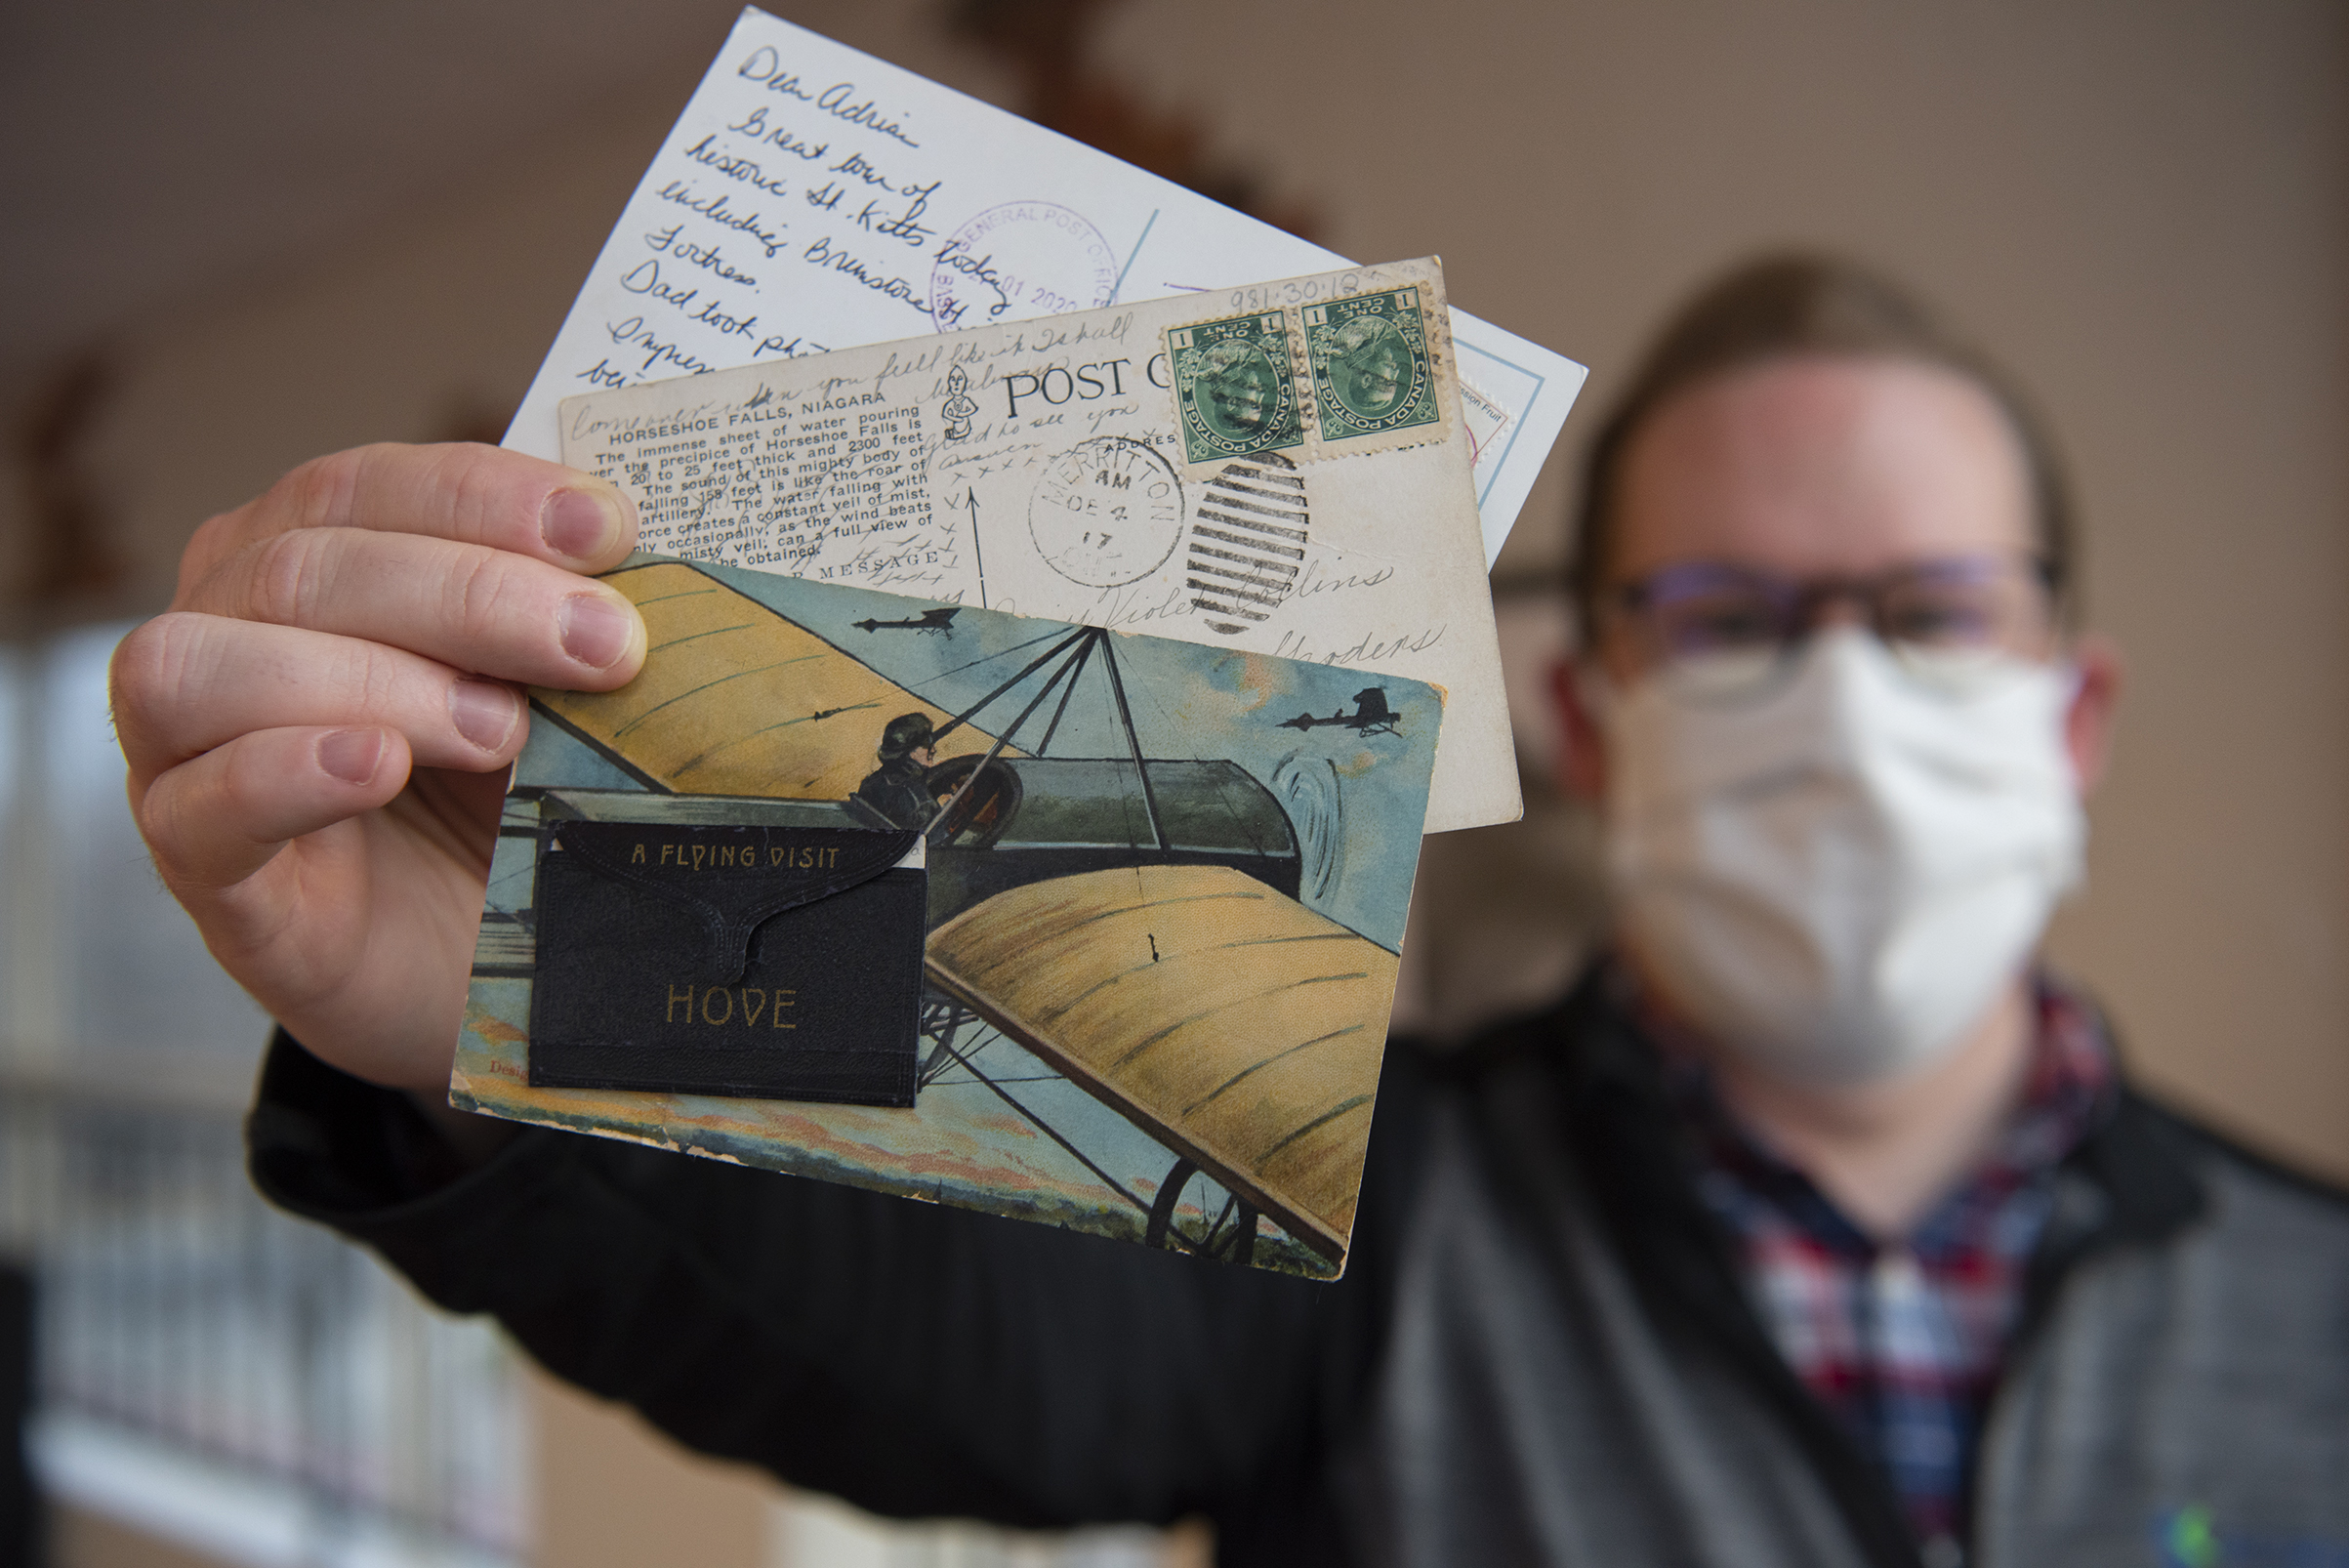 The St. Catharines Museum and Welland Canals Centre is seeking postcards for a new exhibit